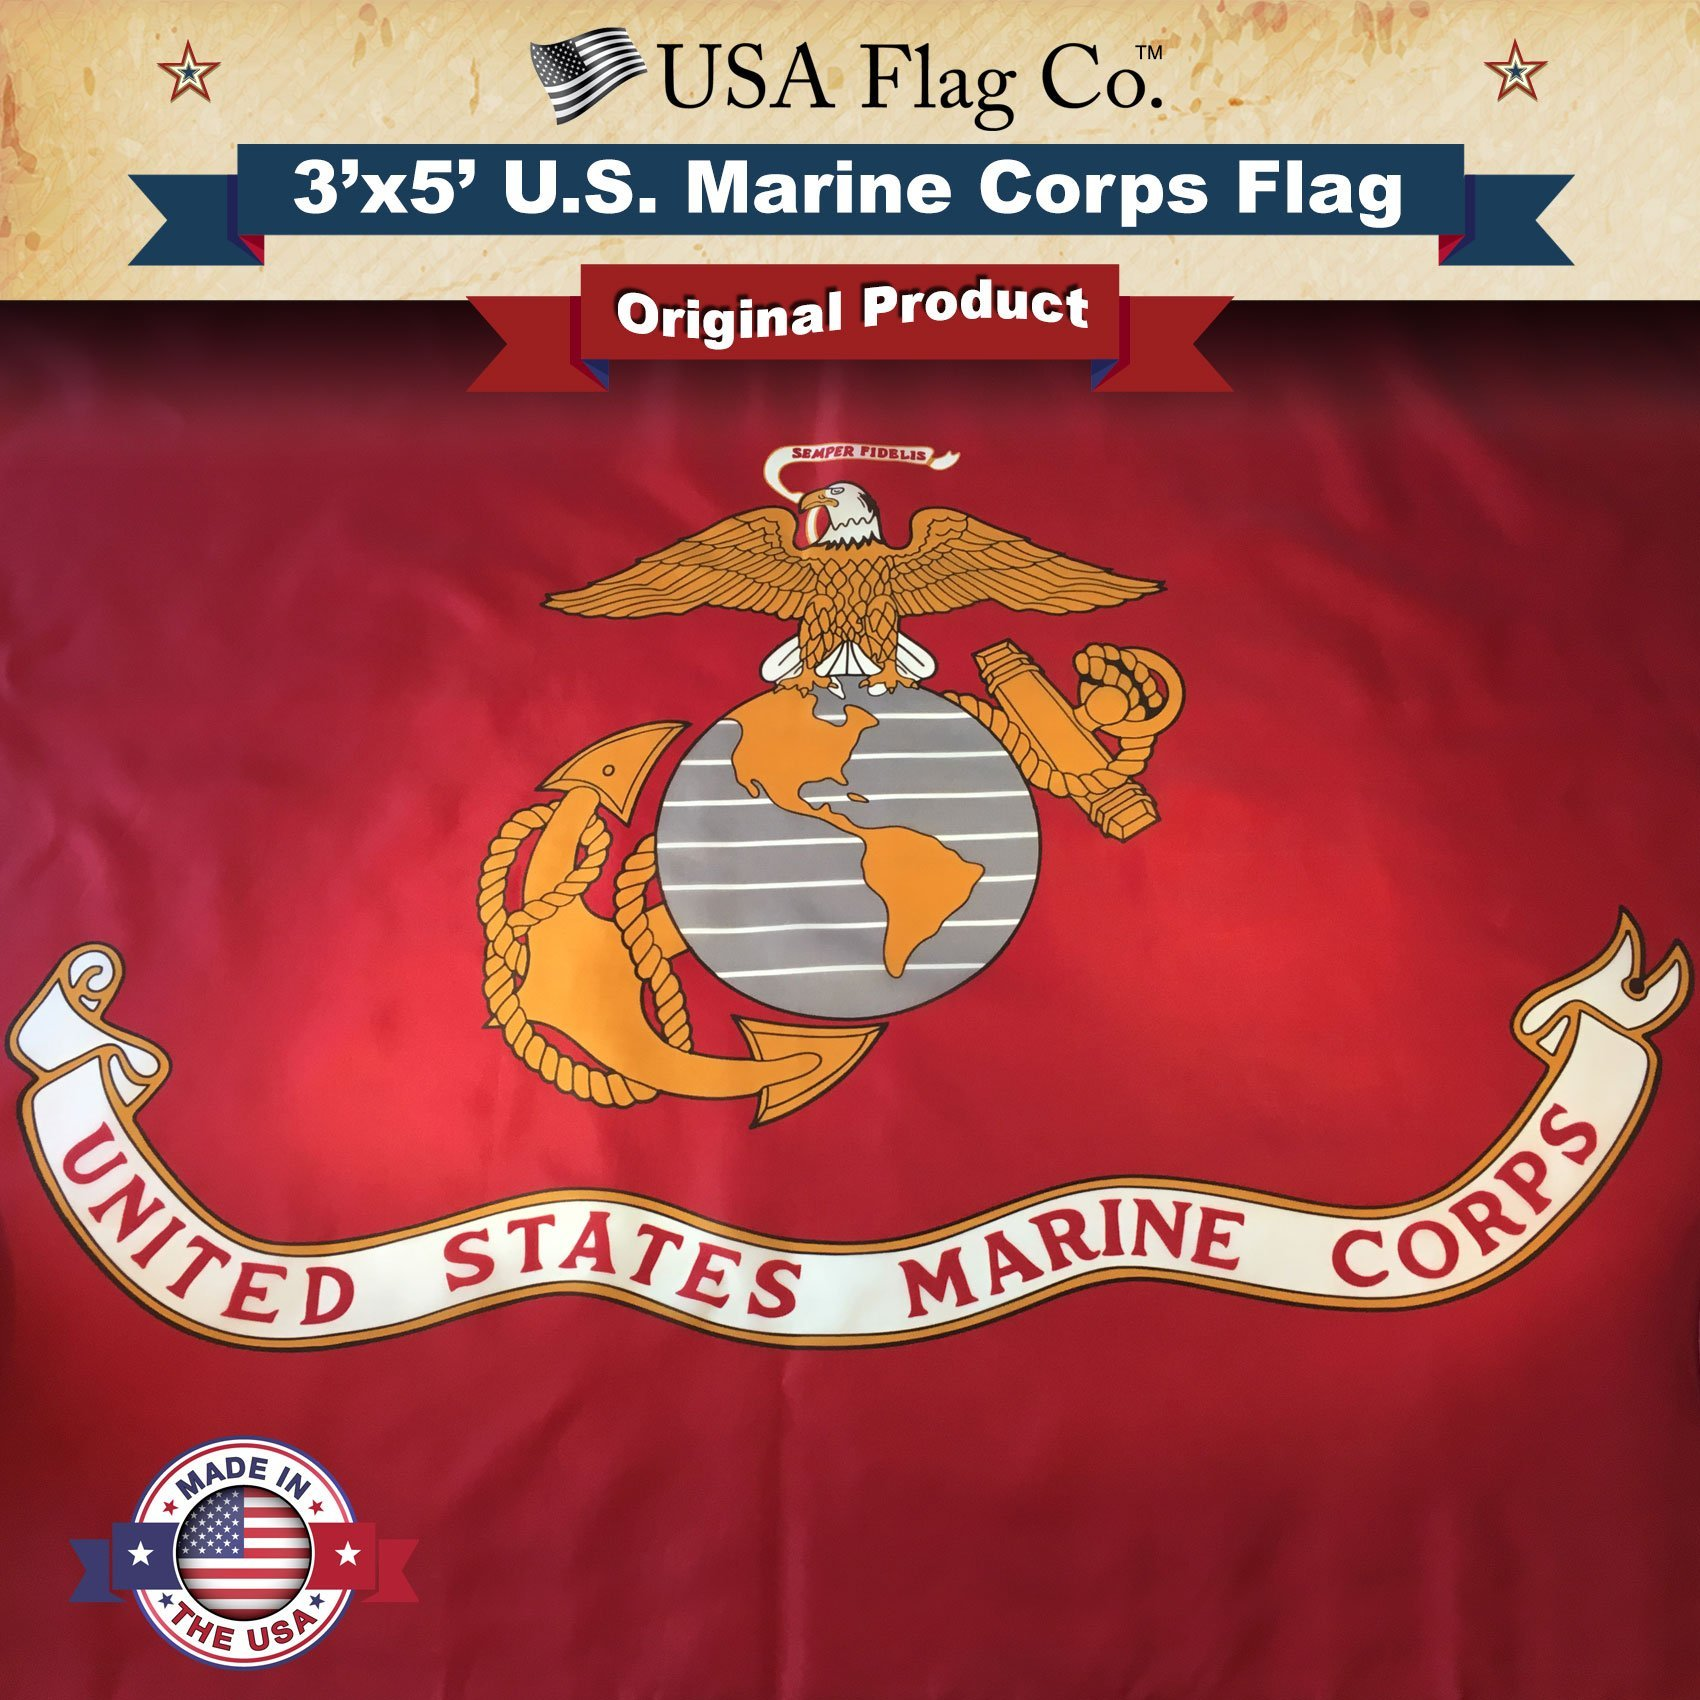 Marine Corps Flag by USA Flag Co. is 100% American Made: The BEST 3x5 Outdoor USMC Flag, Made in the USA for Prime Members and Amazon A to Z Guarantee. (3 by 5 foot)